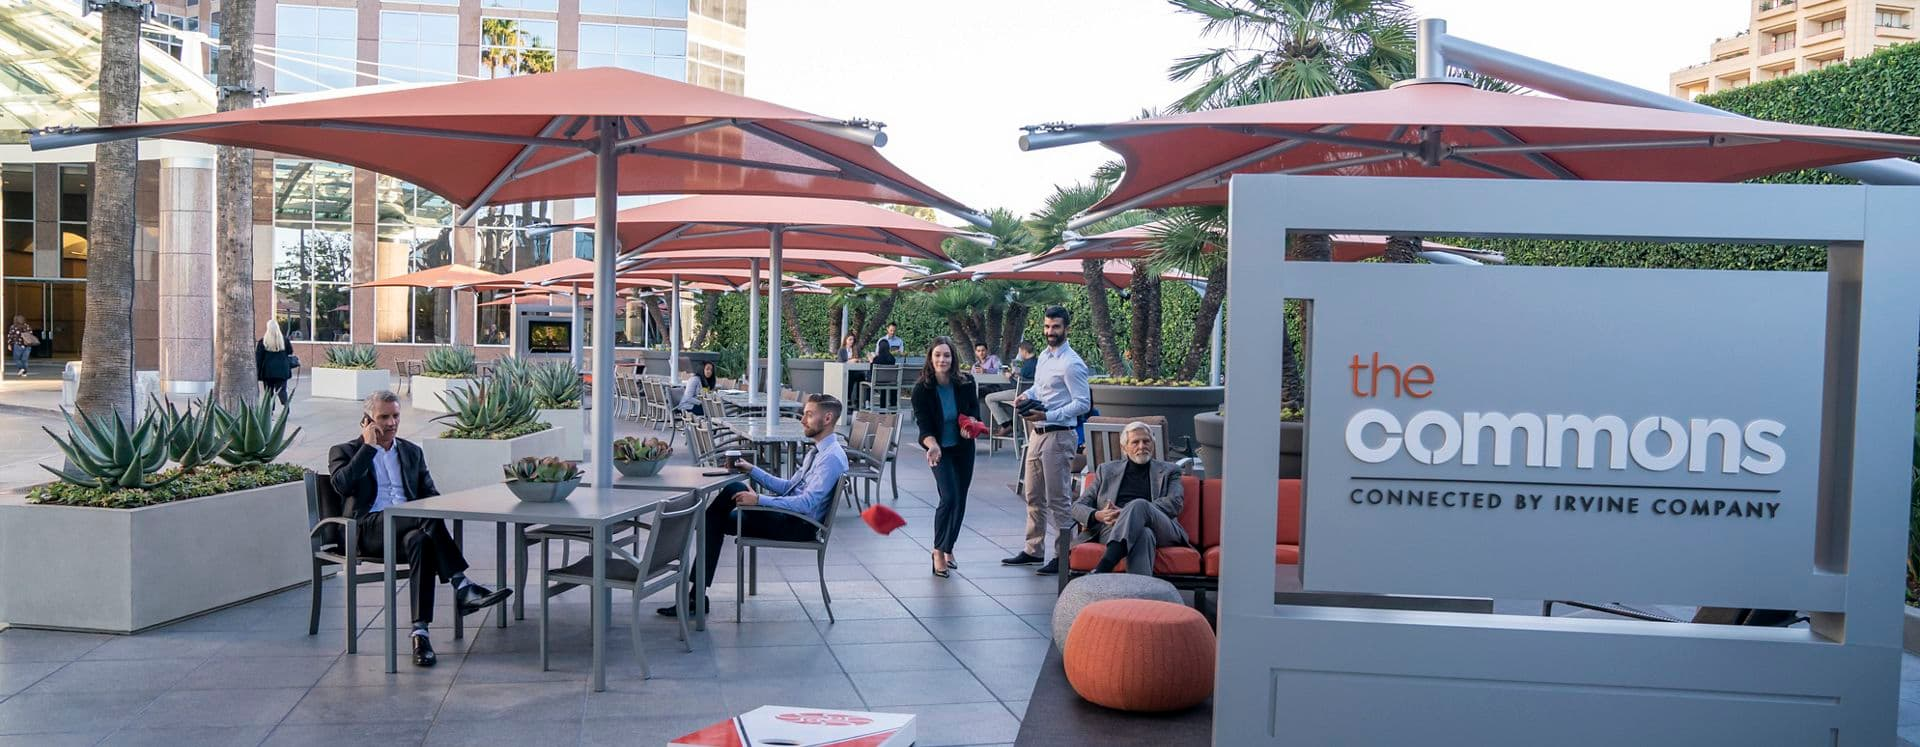 Exterior view of people at The Commons at 2121 Avenue of the Stars Office Properties in Los Angeles, CA.